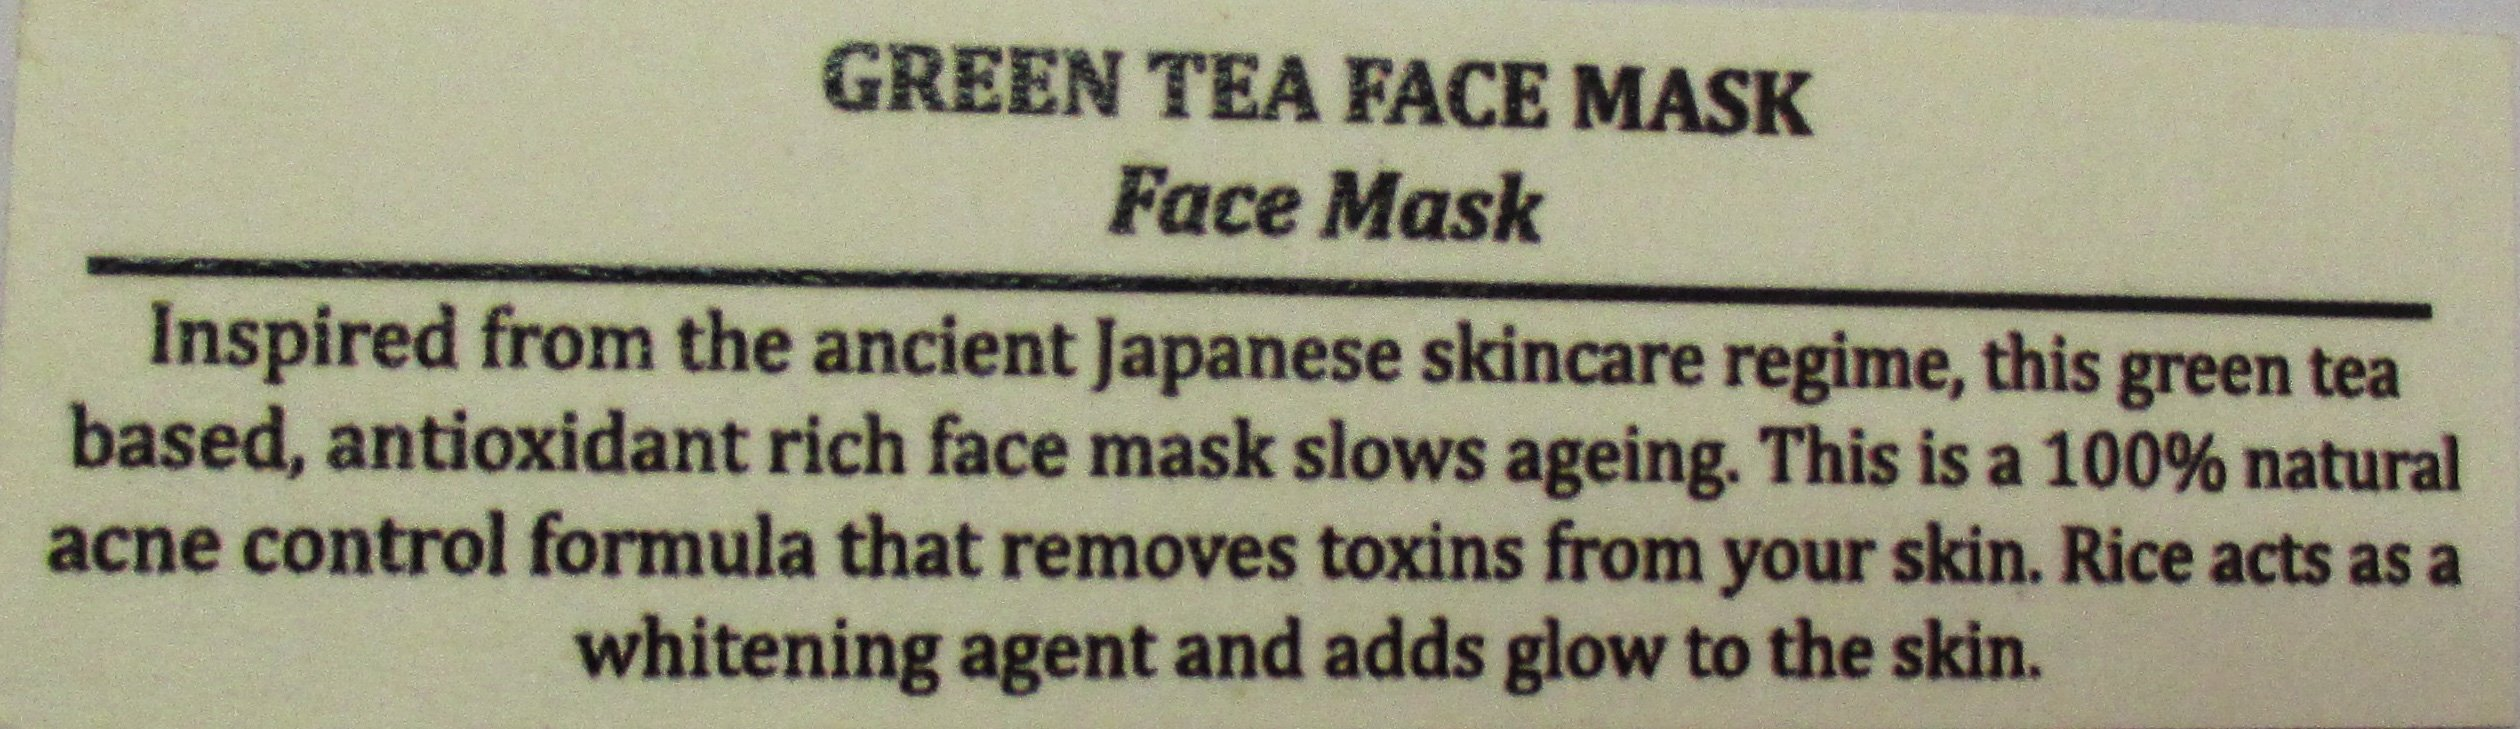 Skin Yoga Green Tea Face Mask Description